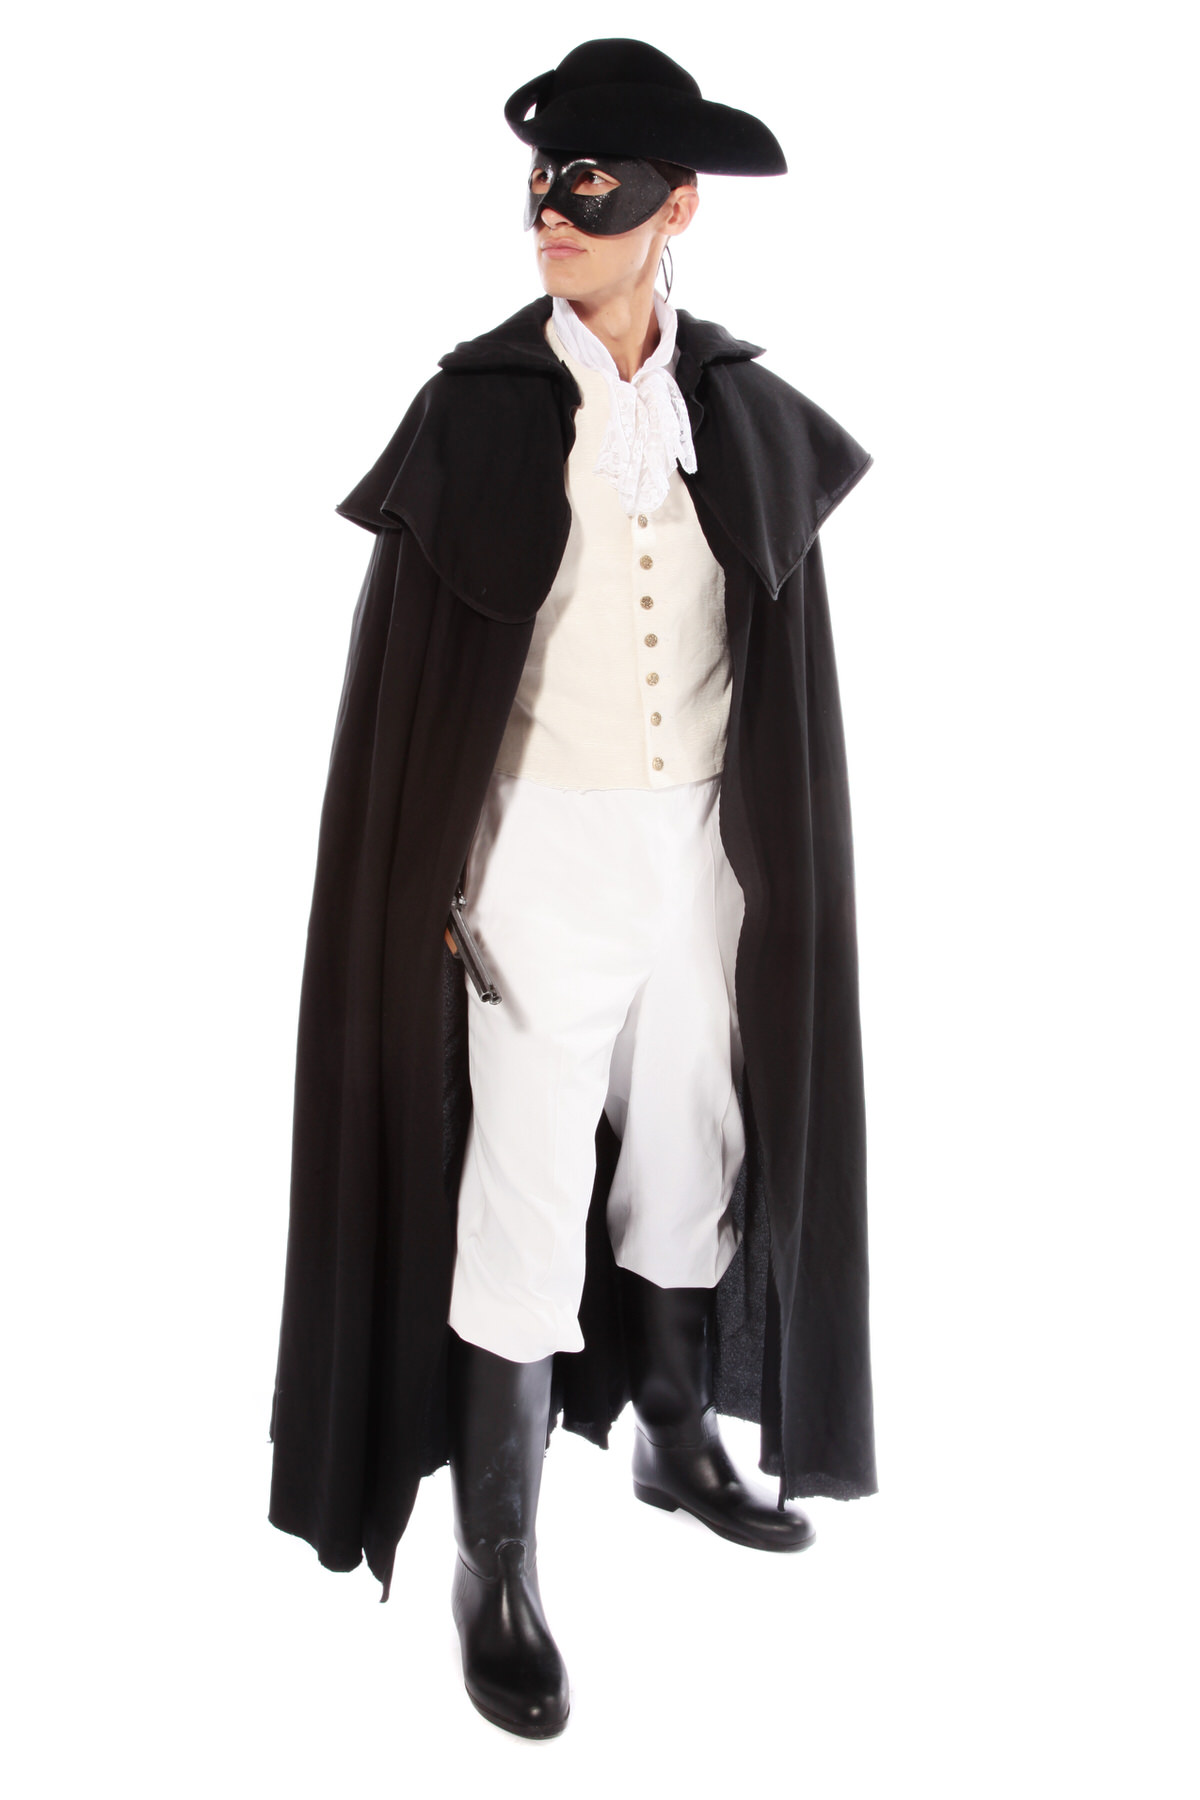 DICK TURPIN HIGHWAYMAN COSTUME W MASK & TRICORN HAT